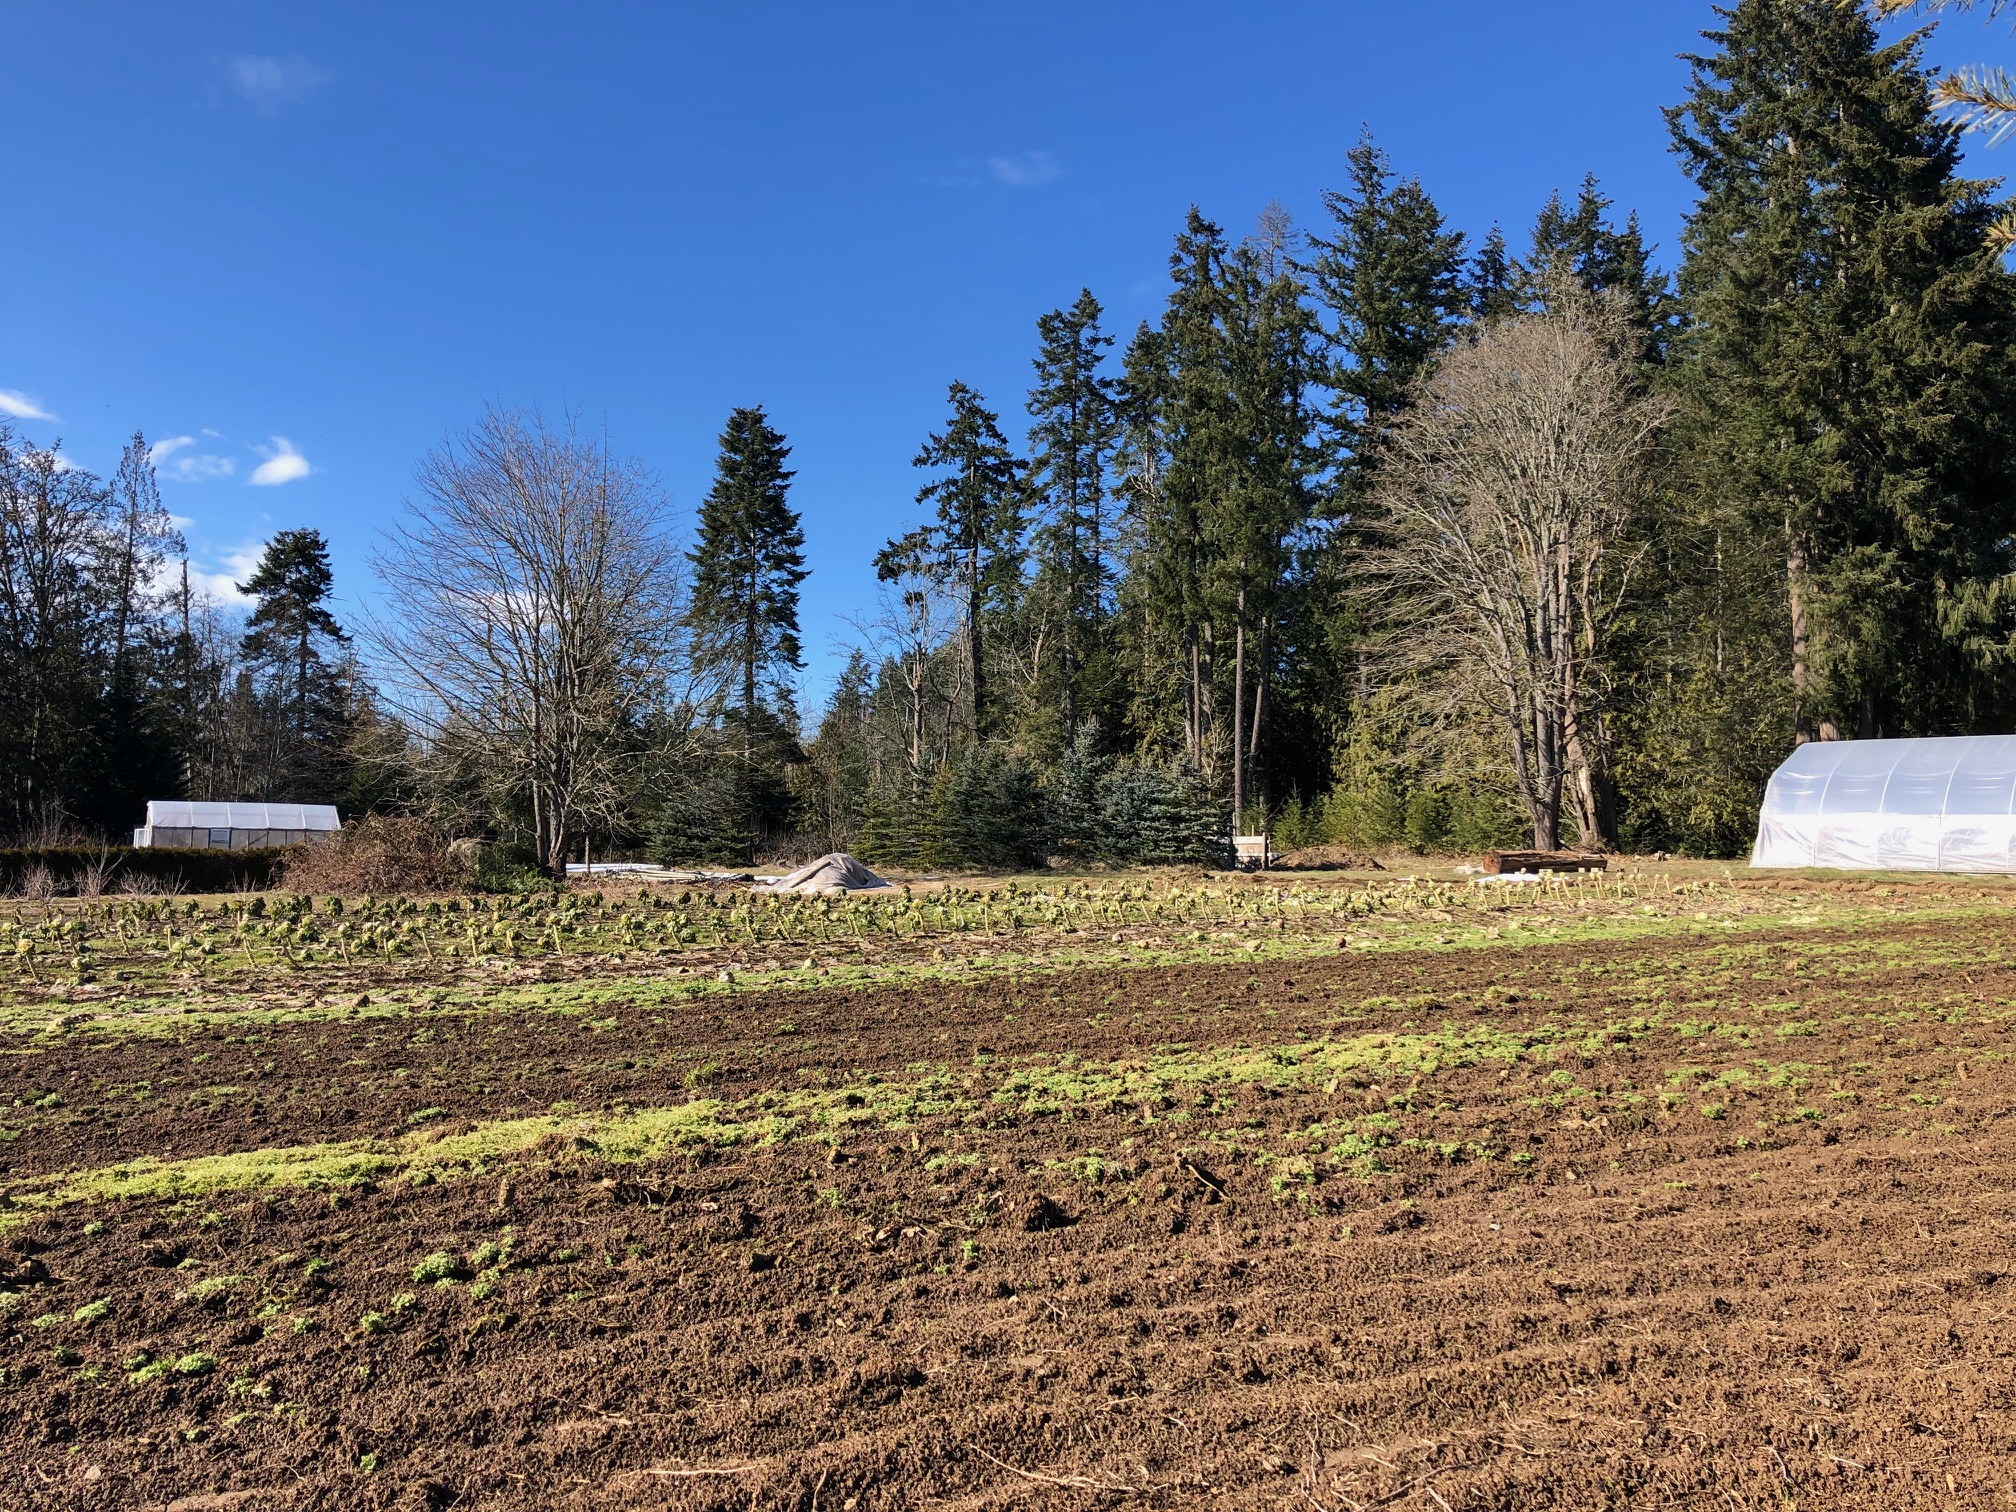 dudinks garden, farm job, nanaimo bc, berry pickers